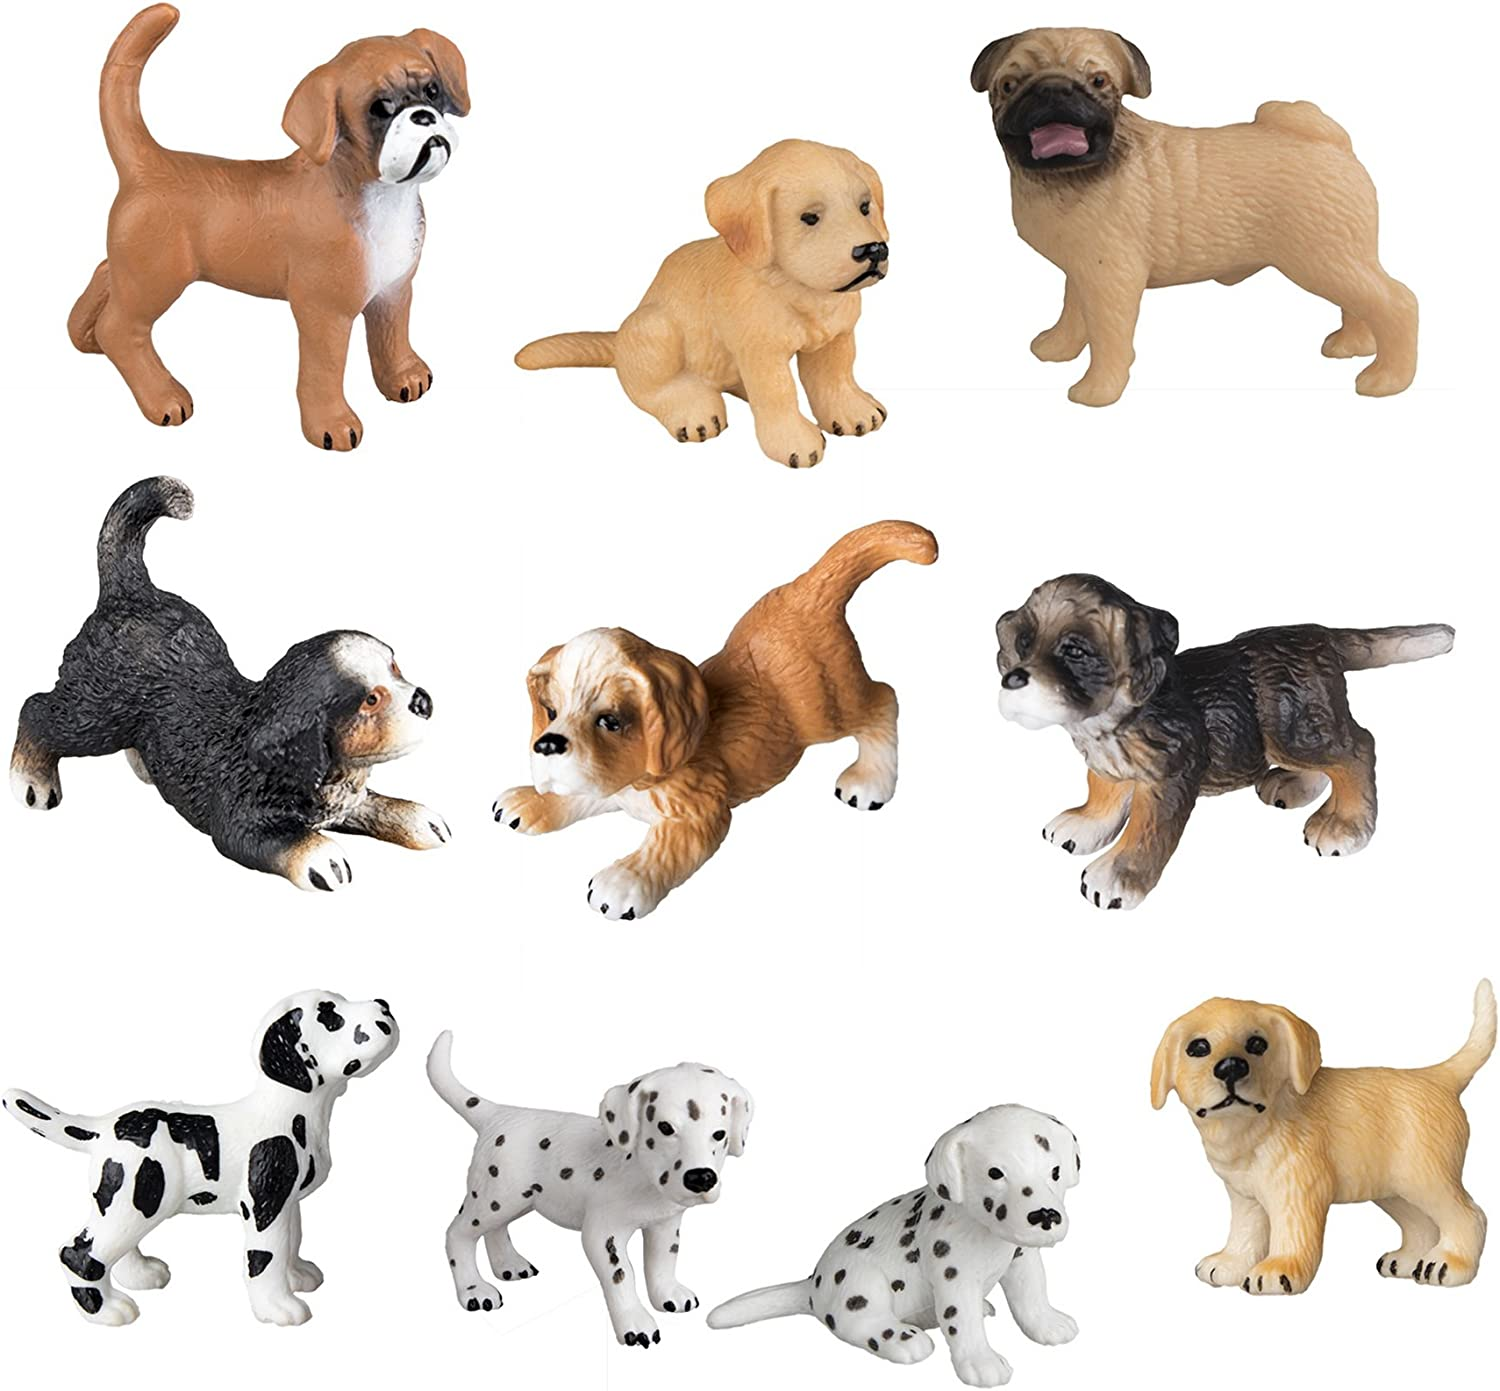 Set Of Dog Stuffed Animals, Amazon Com Toymany 10pcs Dog Figurines Playset Realistic Detailed Plastic Puppy Figures Hand Painted Emulational Dogs Animals Toy Set Cake Toppers Christmas Birthday Gift For Kids Toddlers Toys Games